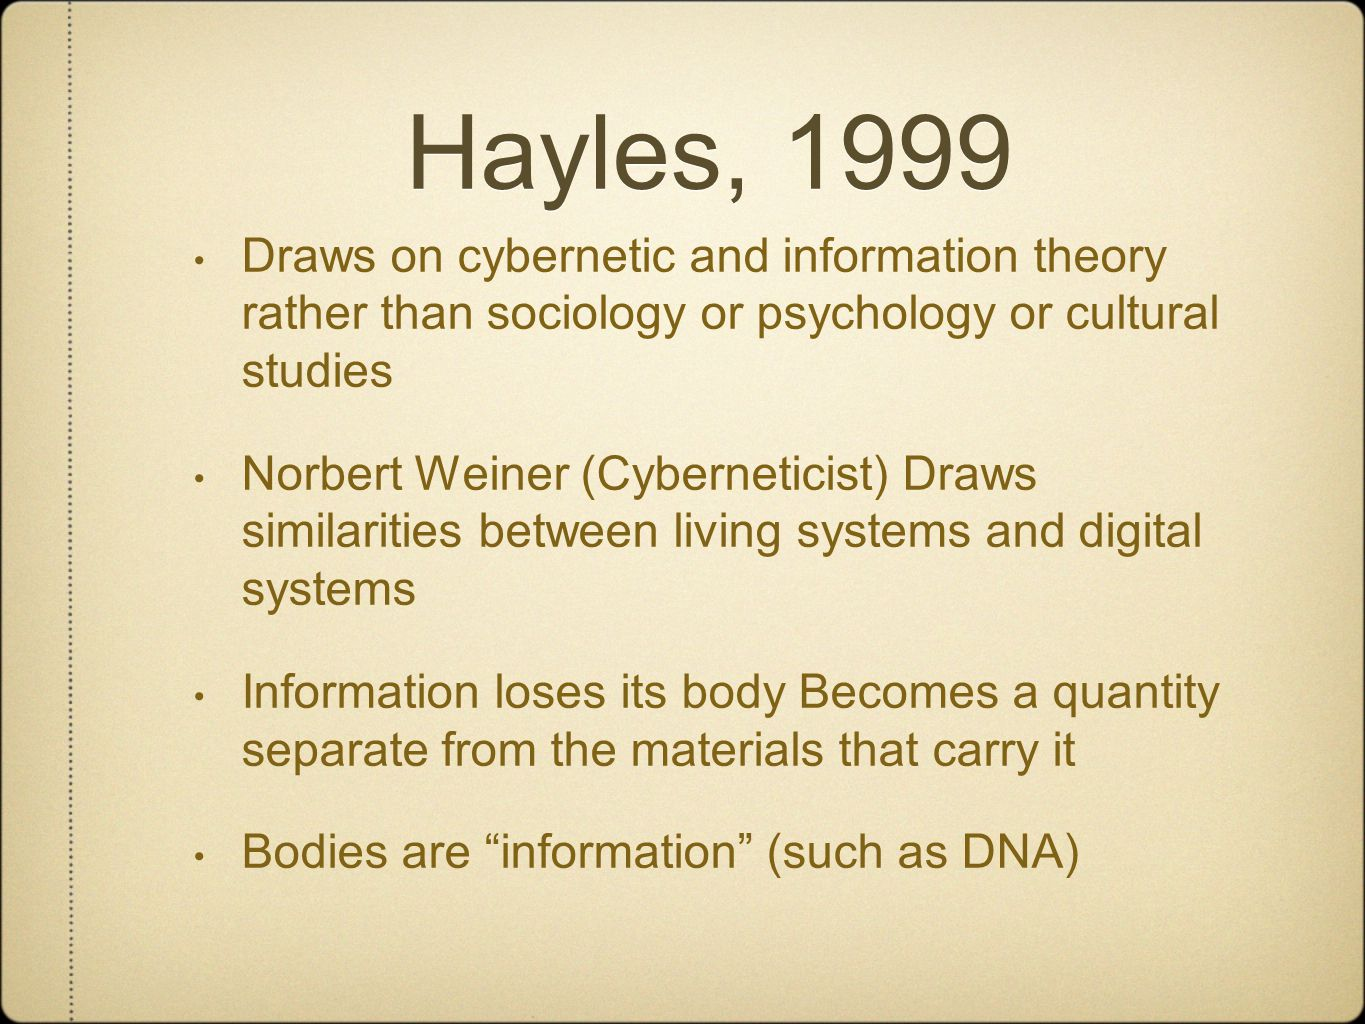 Hayles, 1999 Draws on cybernetic and information theory rather than sociology or psychology or cultural studies Norbert Weiner (Cyberneticist) Draws similarities between living systems and digital systems Information loses its body Becomes a quantity separate from the materials that carry it Bodies are information (such as DNA)